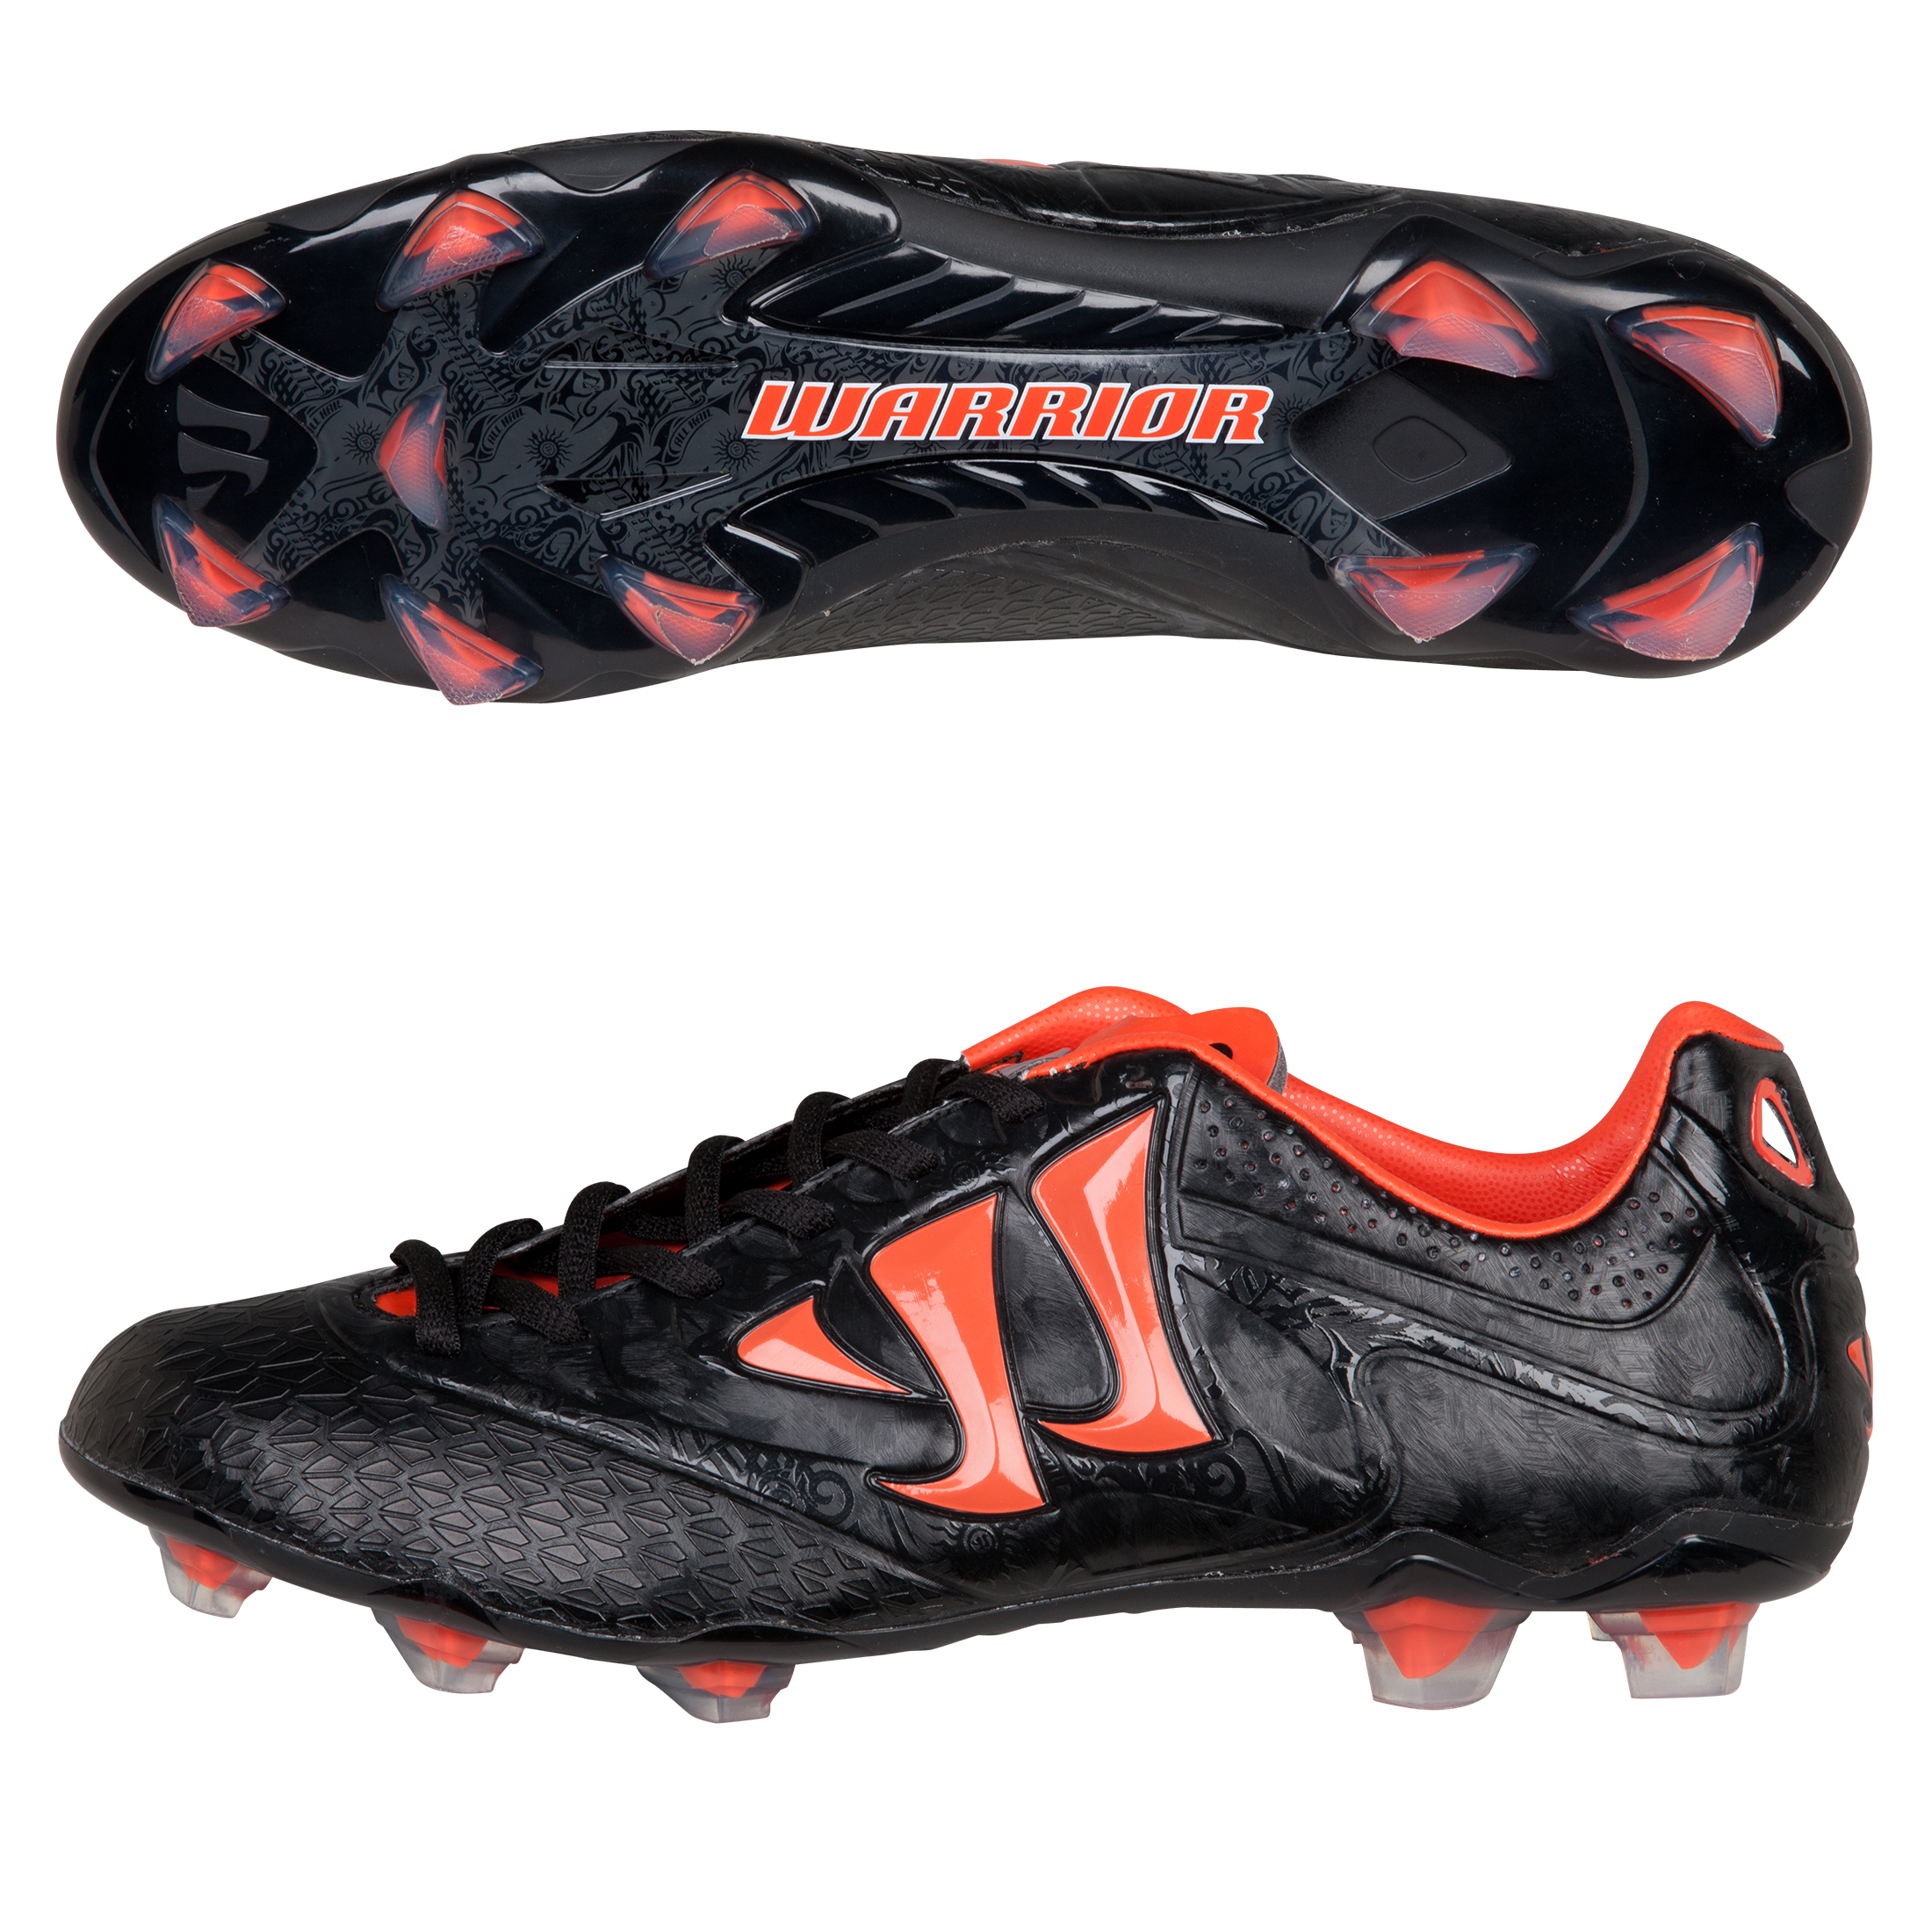 Warrior Sports Skreamer Combat Firm Ground Football Boots - Black/Spicy Orange